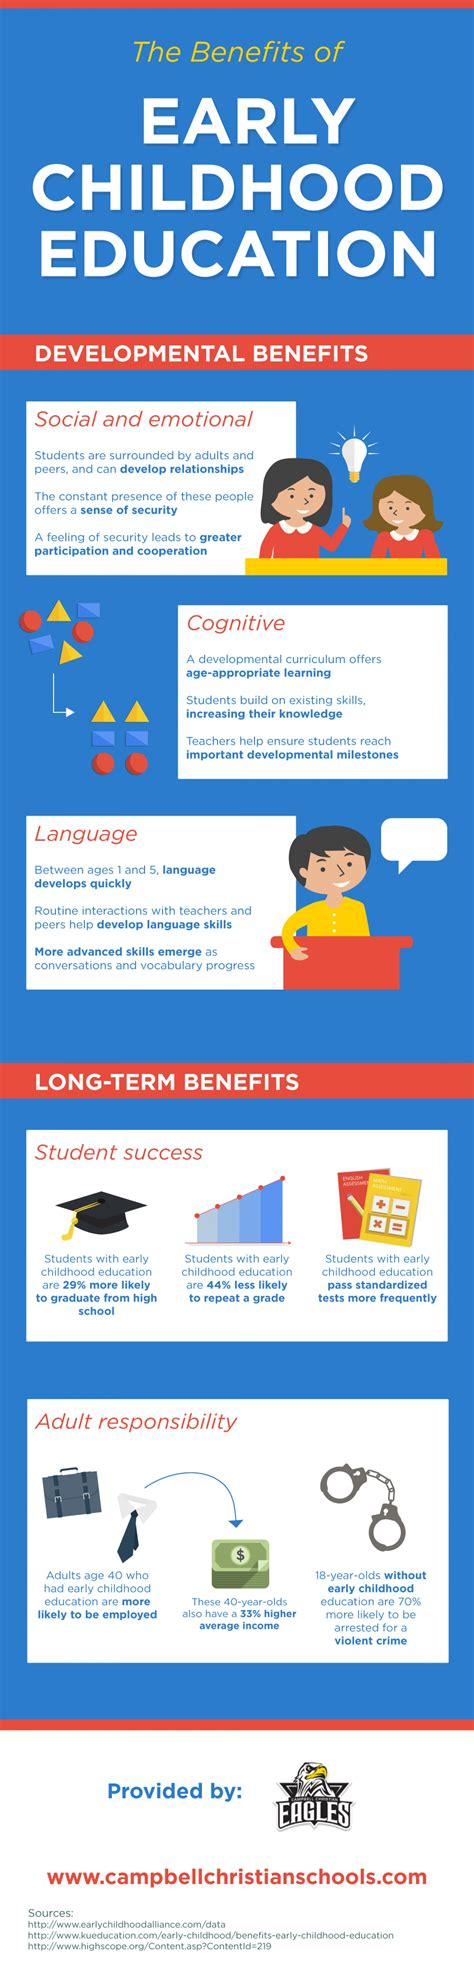 the benefits of early childhood education visual ly 294   the benefits of early childhood education 548ca6c4c0618 w1500